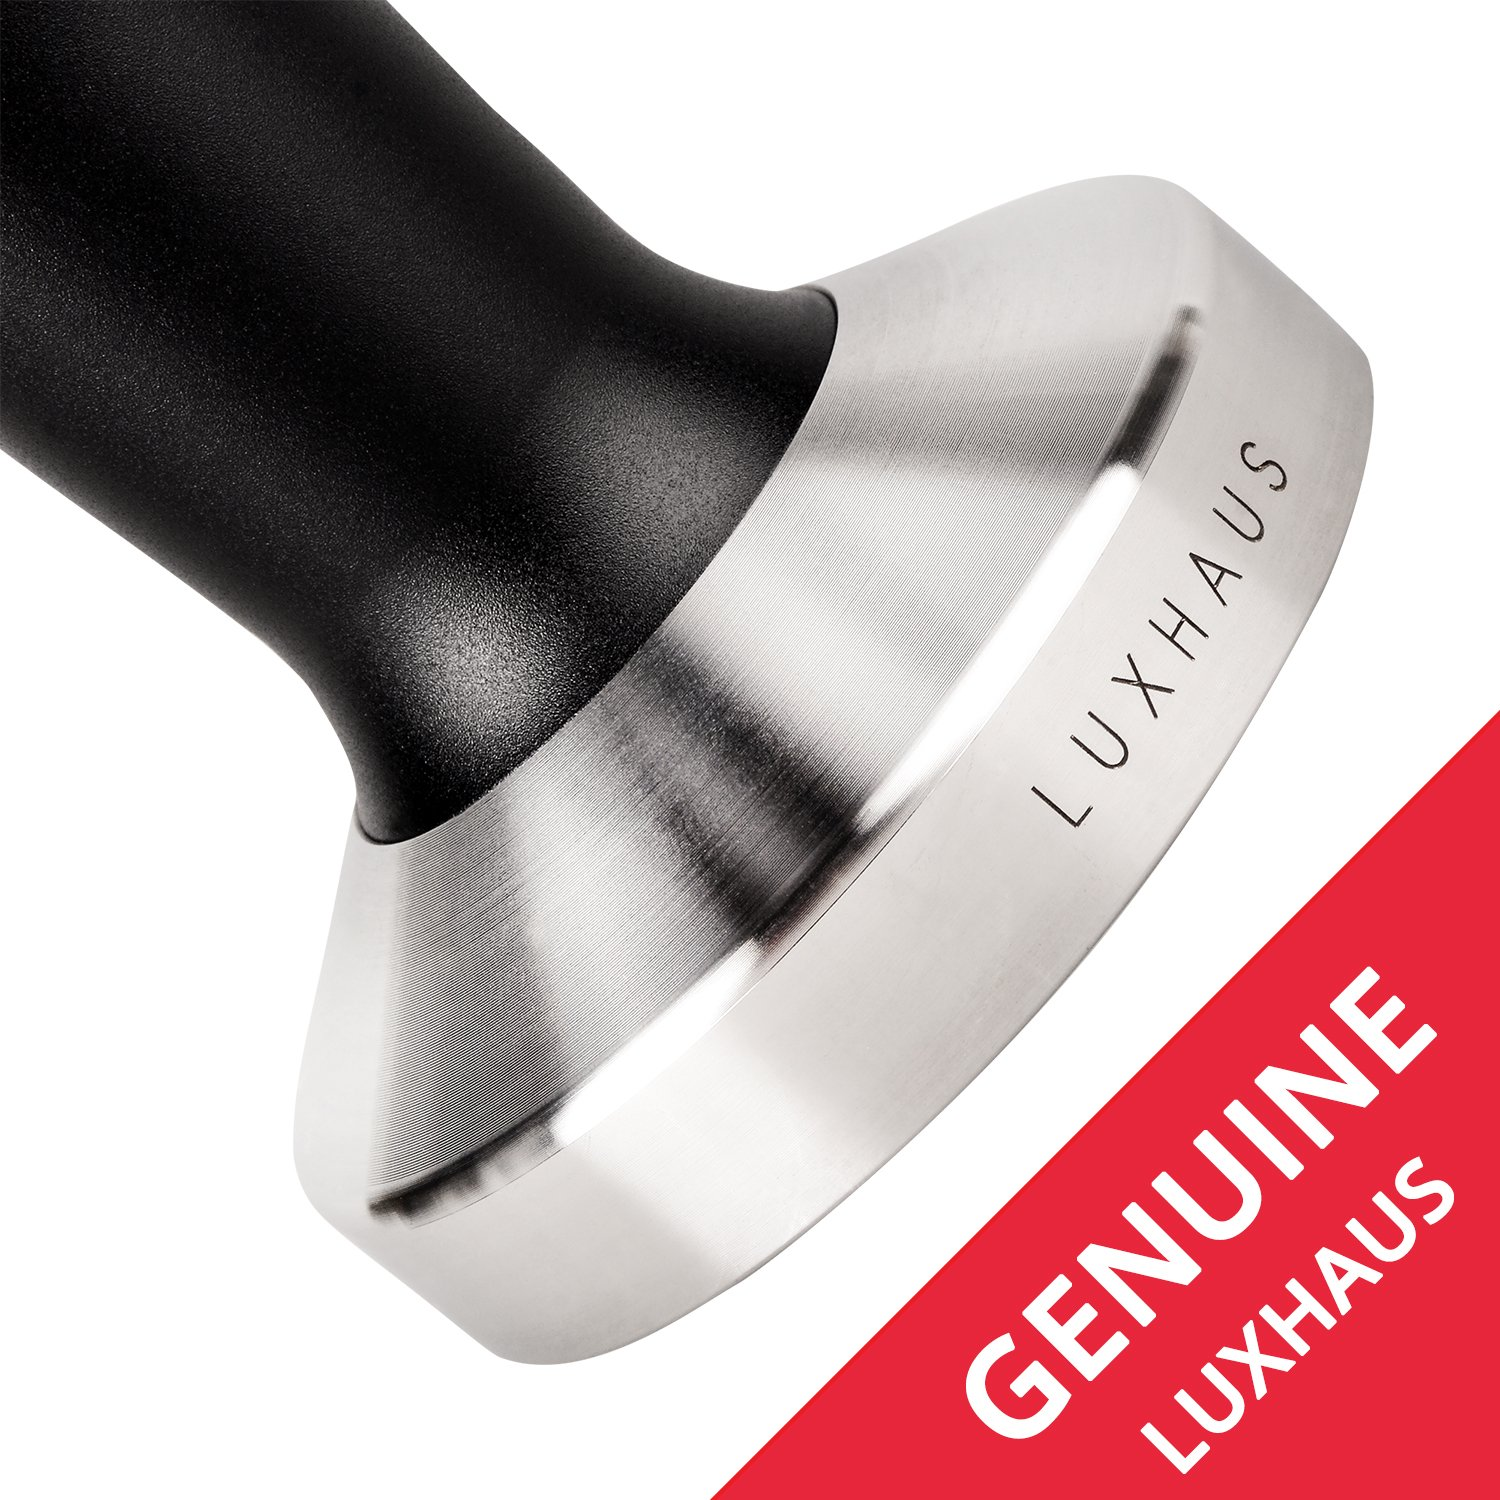 LuxHaus 58mm Espresso Tamper - Premium Barista Coffee Tamper with 100% Flat Stainless Steel Base by LuxHaus (Image #6)